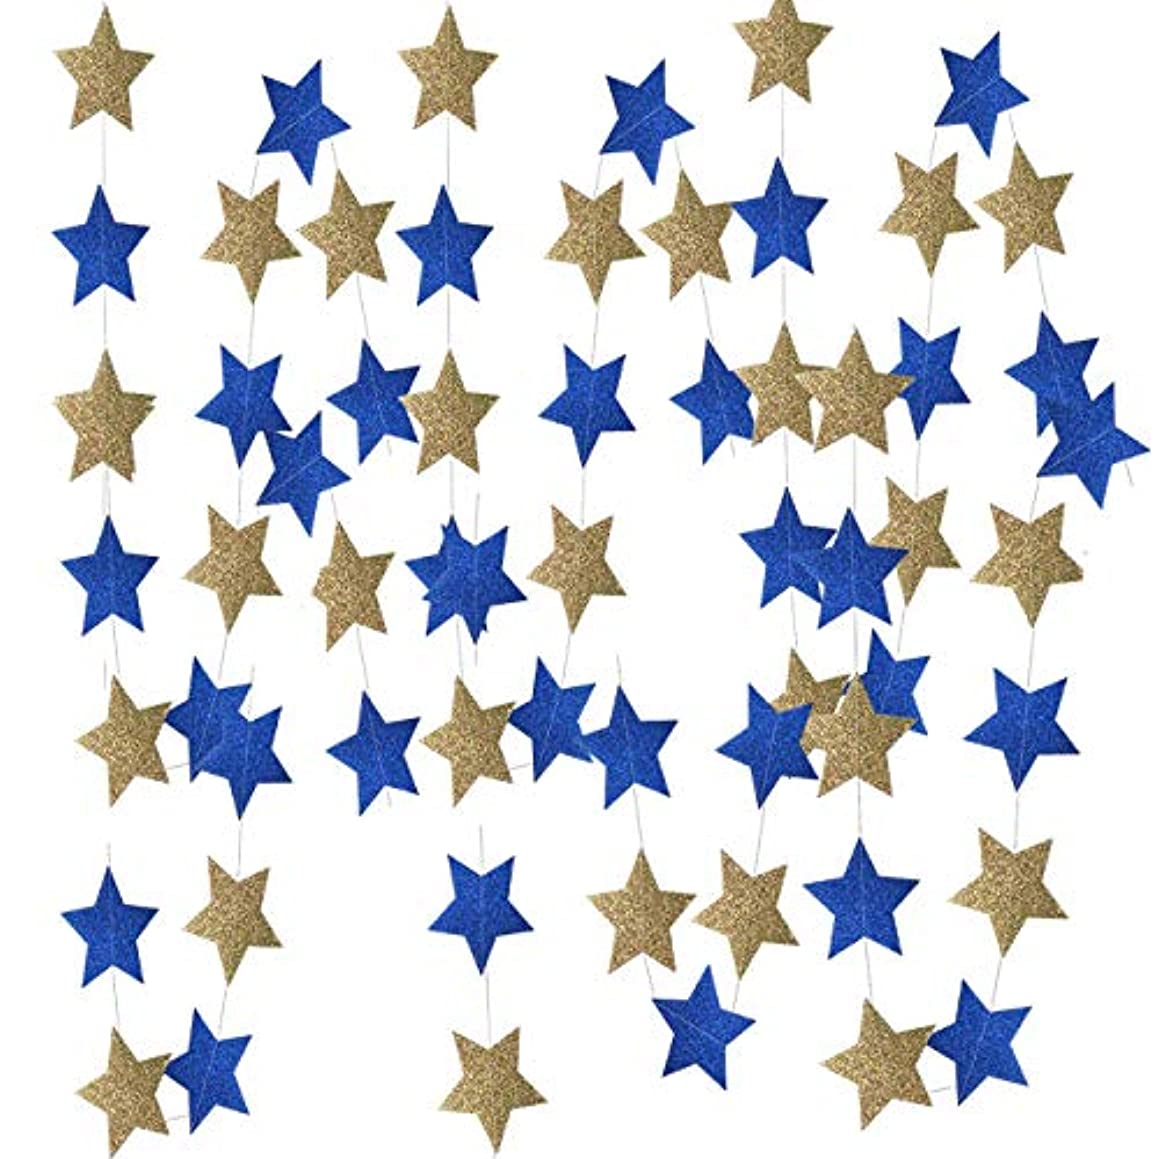 Glitter Navy Gold Star Garlands of 2pcs for Outer Space Party Decorations Birthday Decorations Royal Prince Baby Shower Decorations